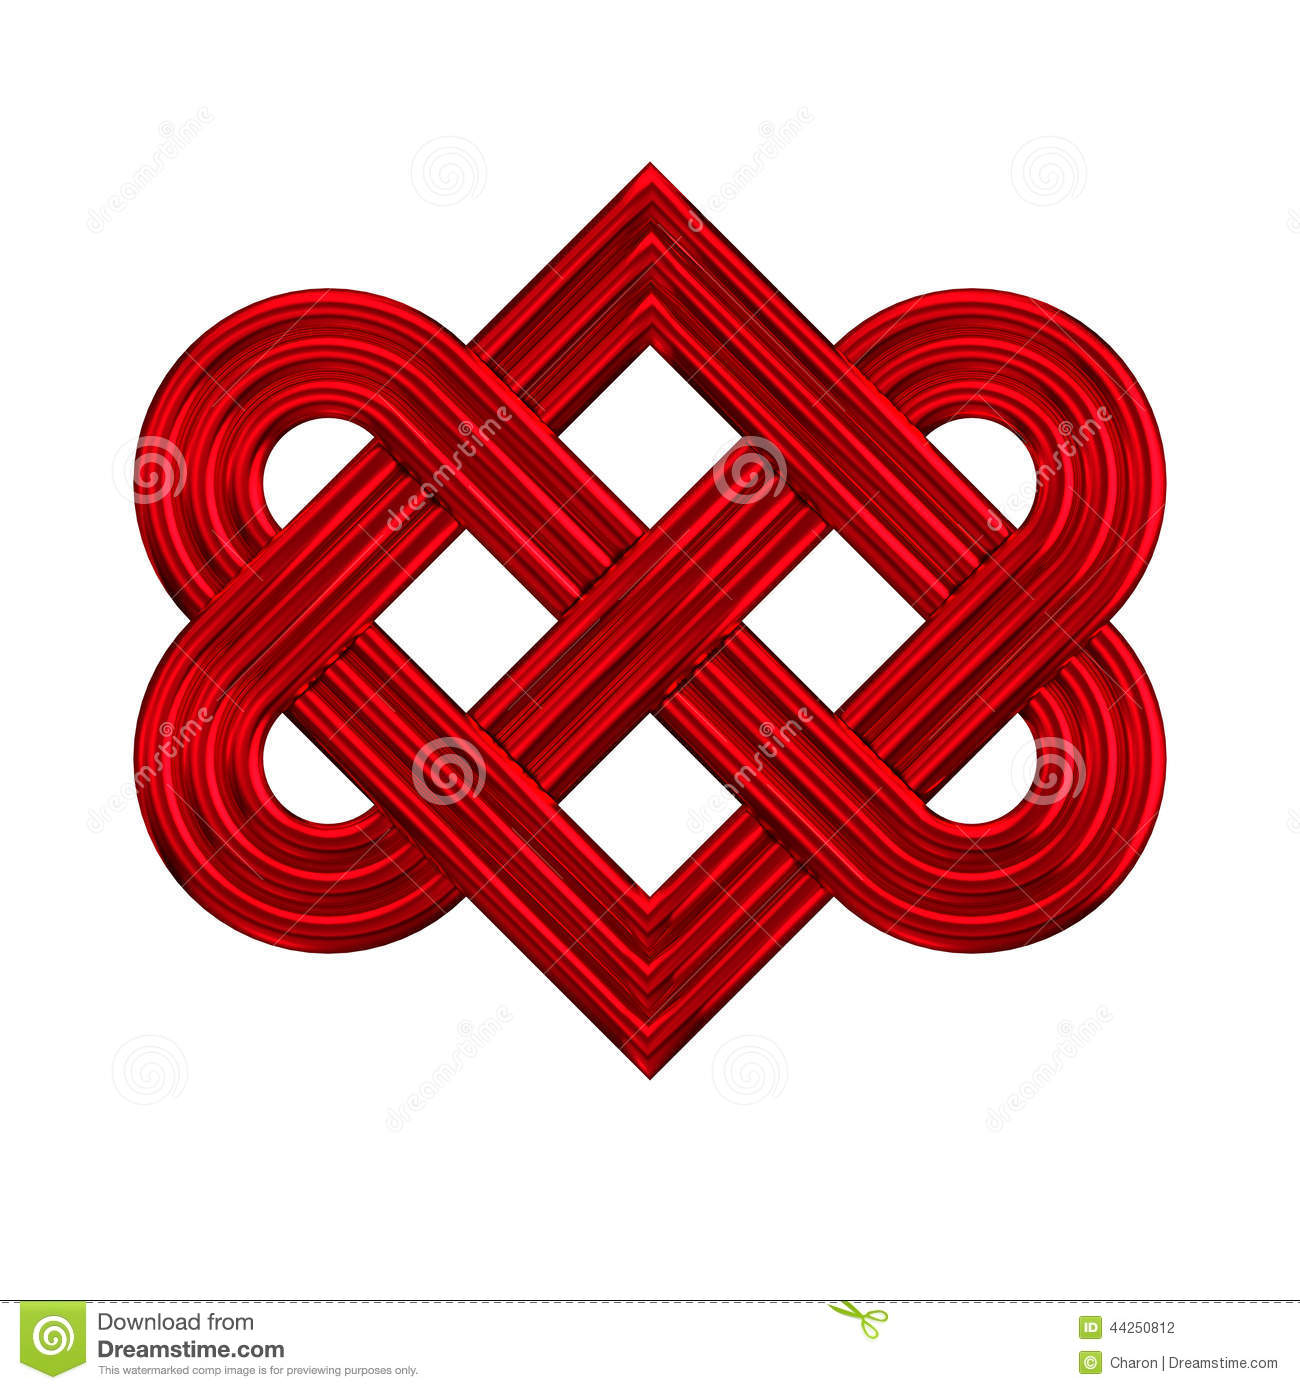 Red Celtic Knot Logos